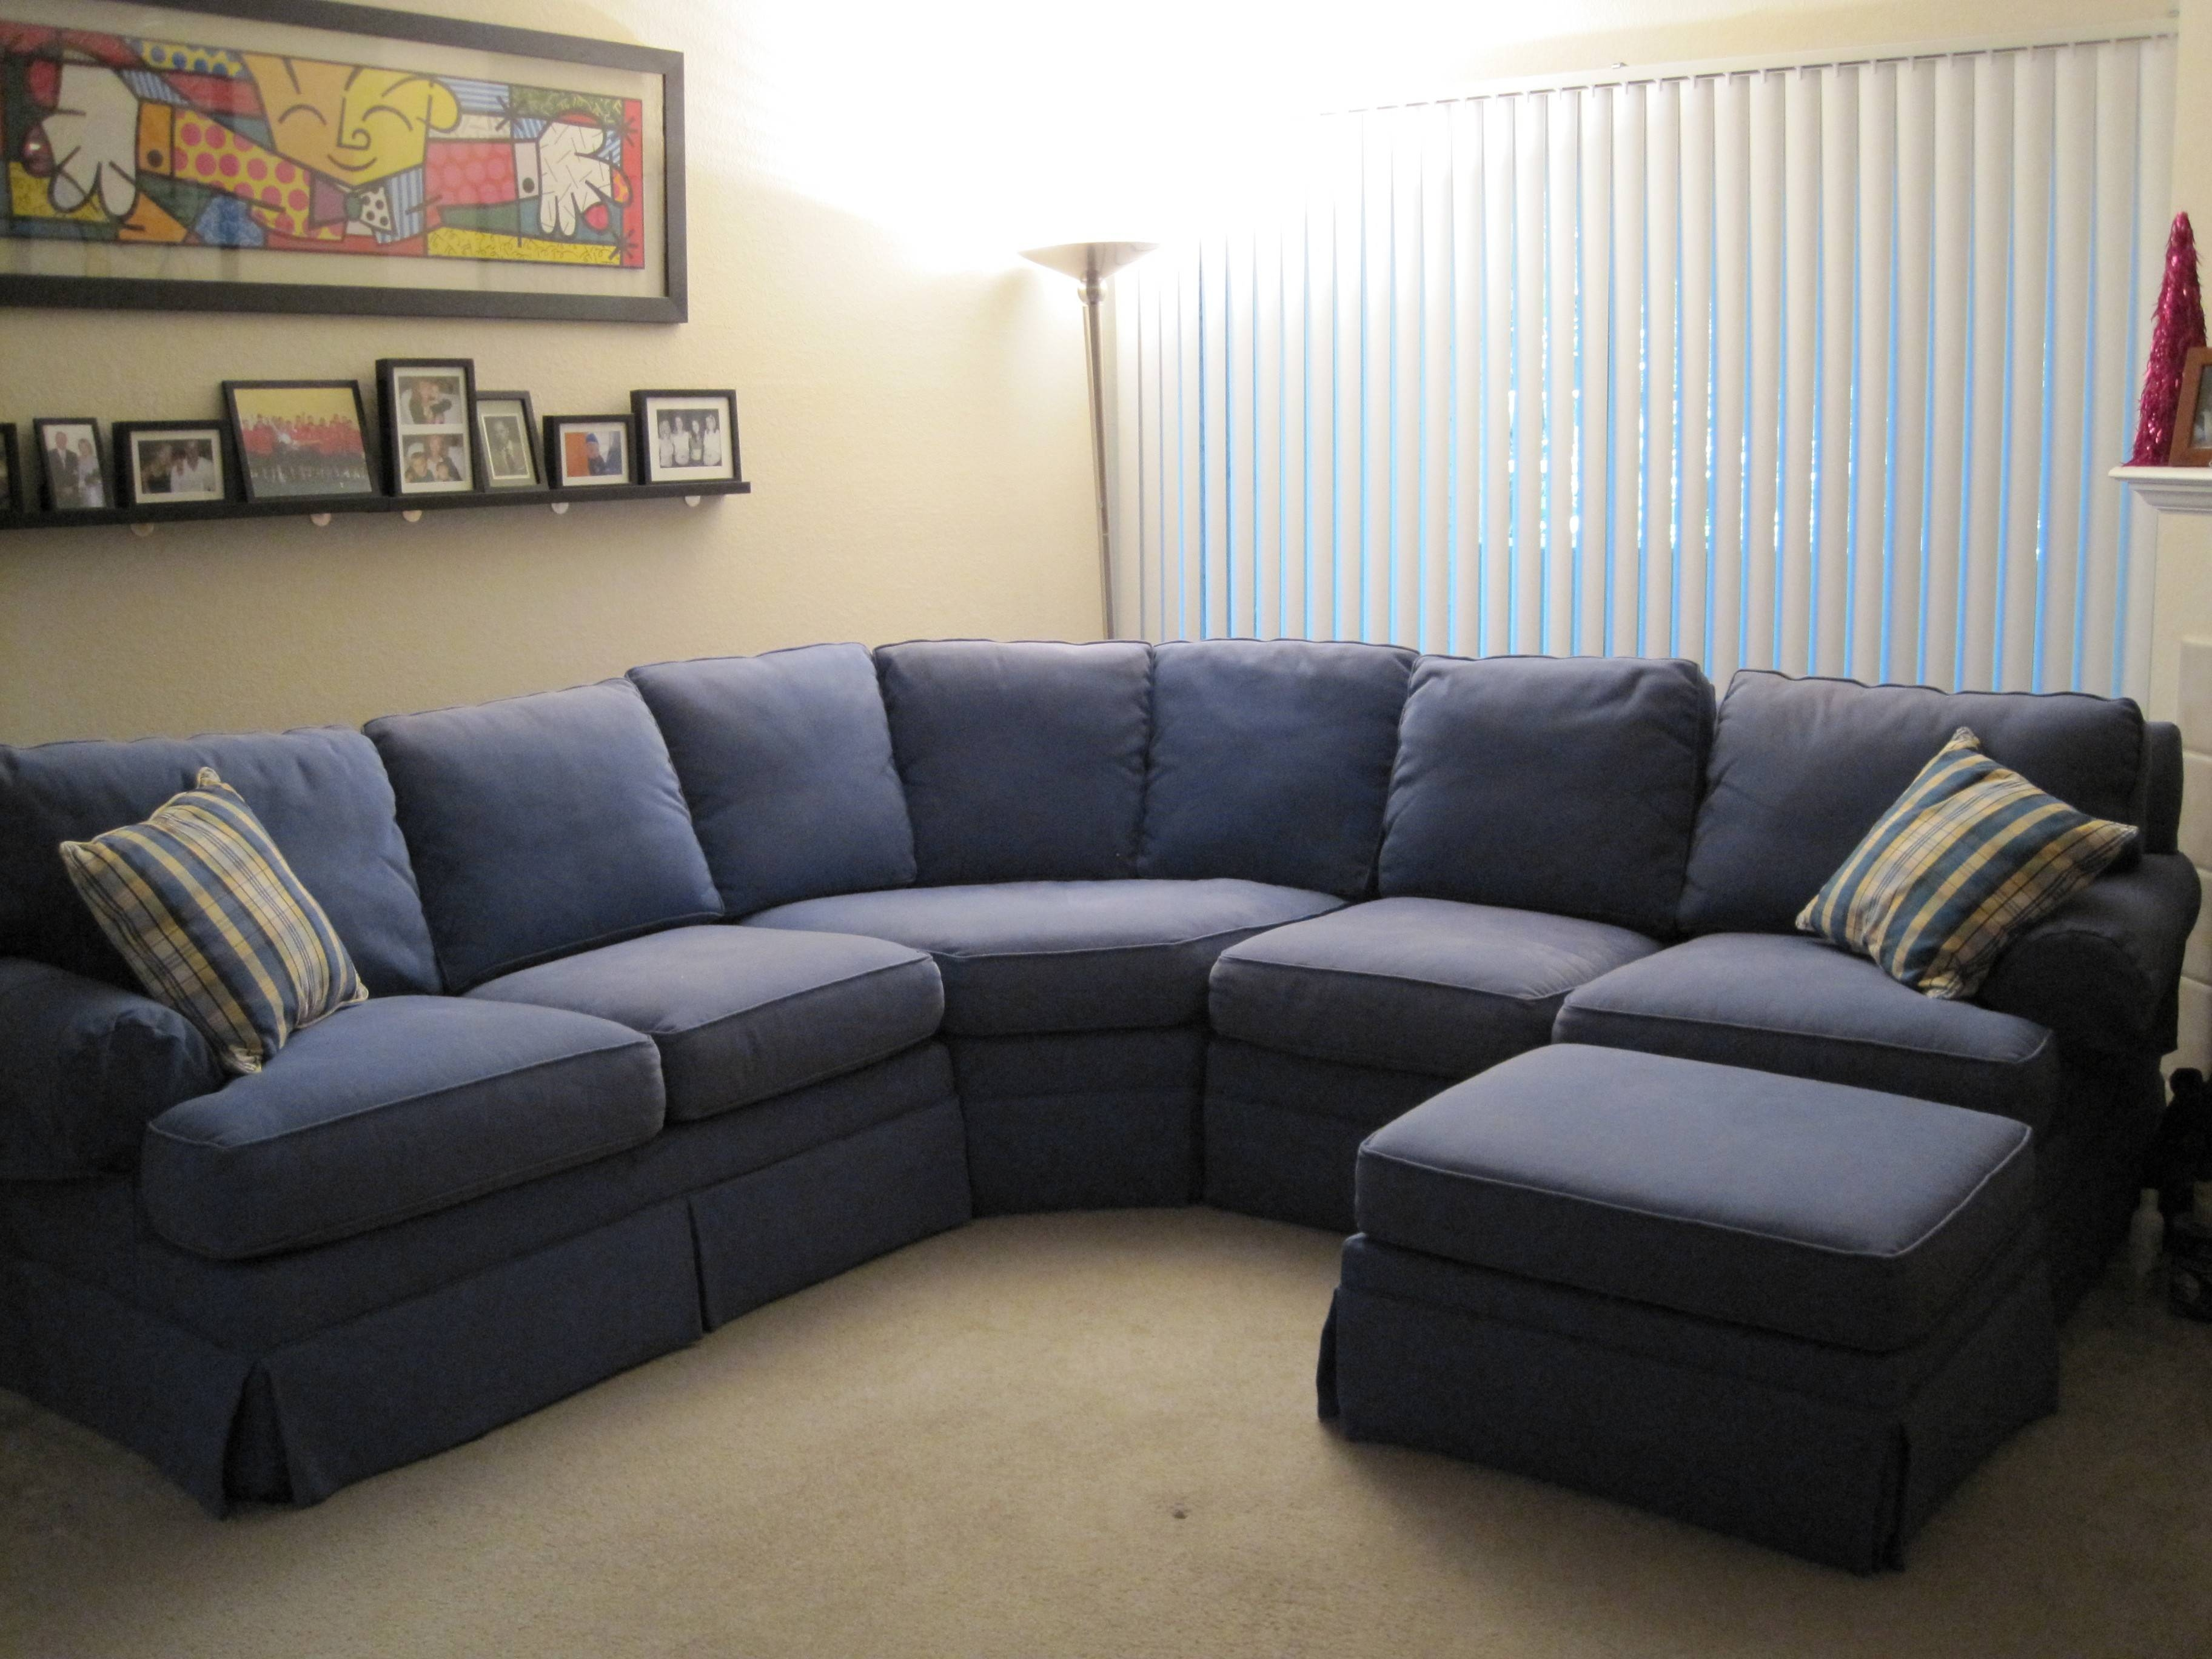 Furniture: Modern And Contemporary Sofa Sectionals For Living Room with Blue Microfiber Sofas (Image 6 of 15)